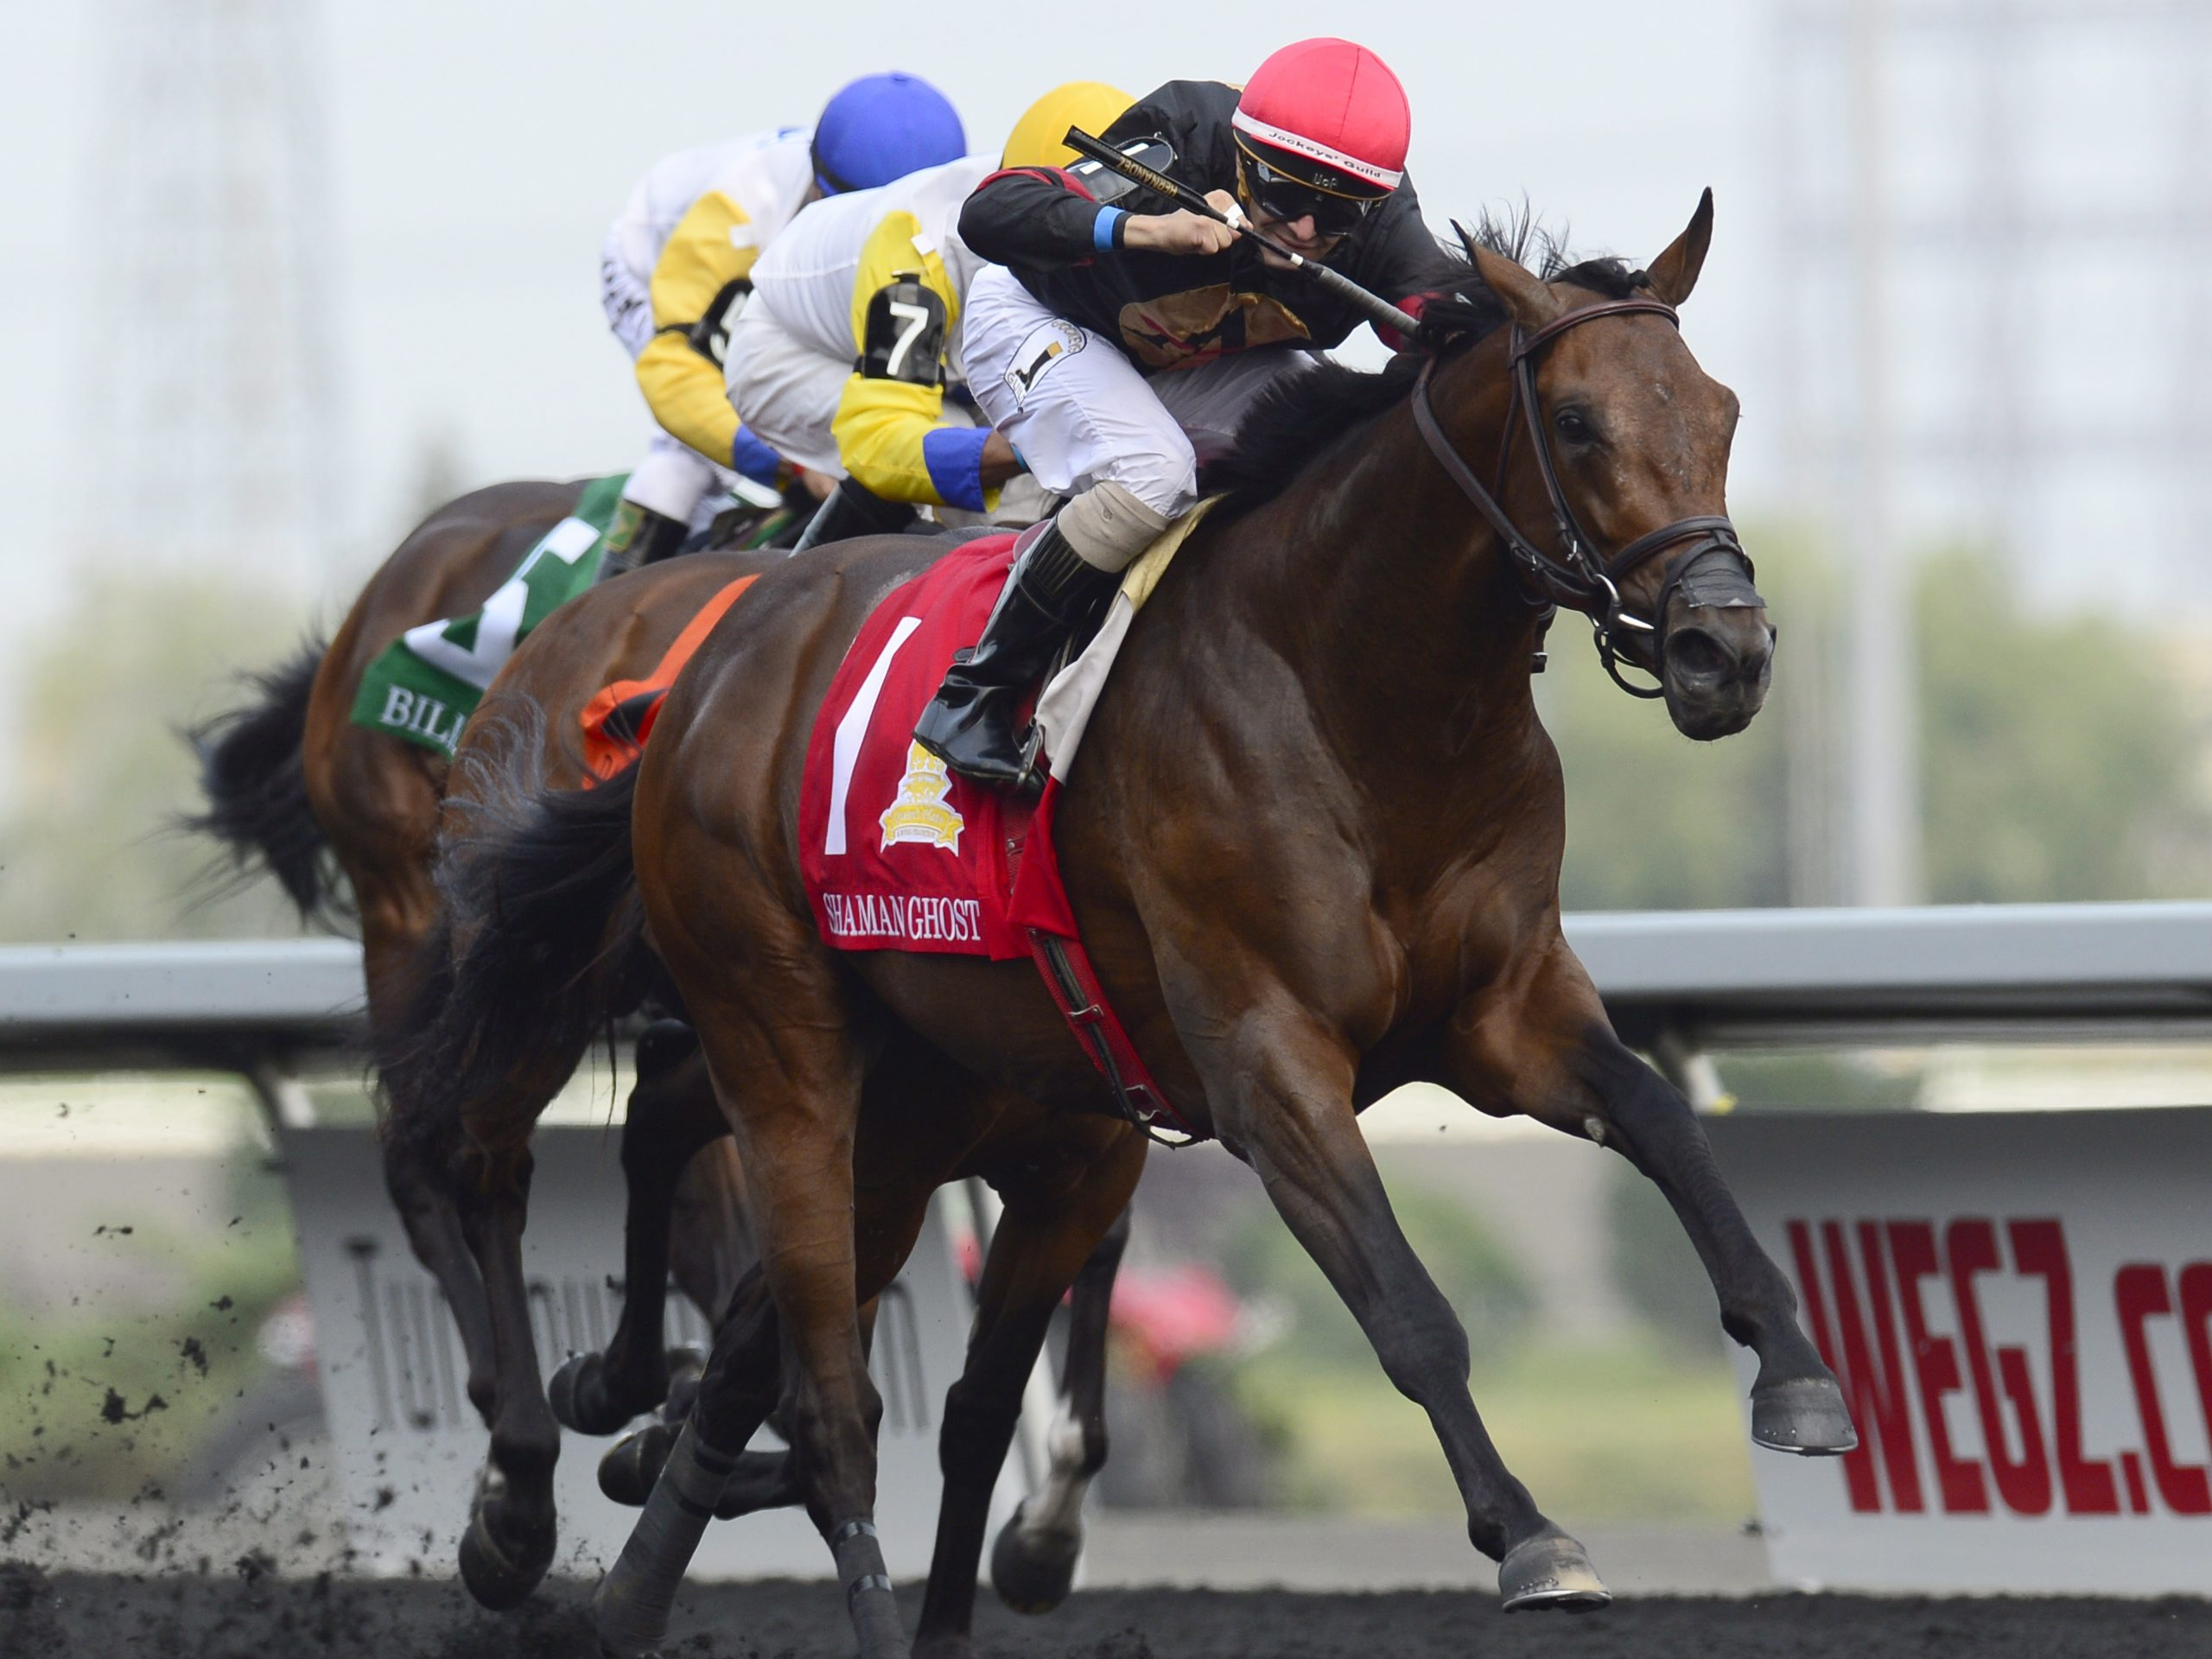 Jockey Rafael Hernandez (1) rides Shaman Ghost to win the 156th running of the Queen's Plate at Woodbine Racetrack in Toronto on Sunday, July 5, 2015. (Frank Gunn/The Canadian Press via AP) MANDATORY CREDIT